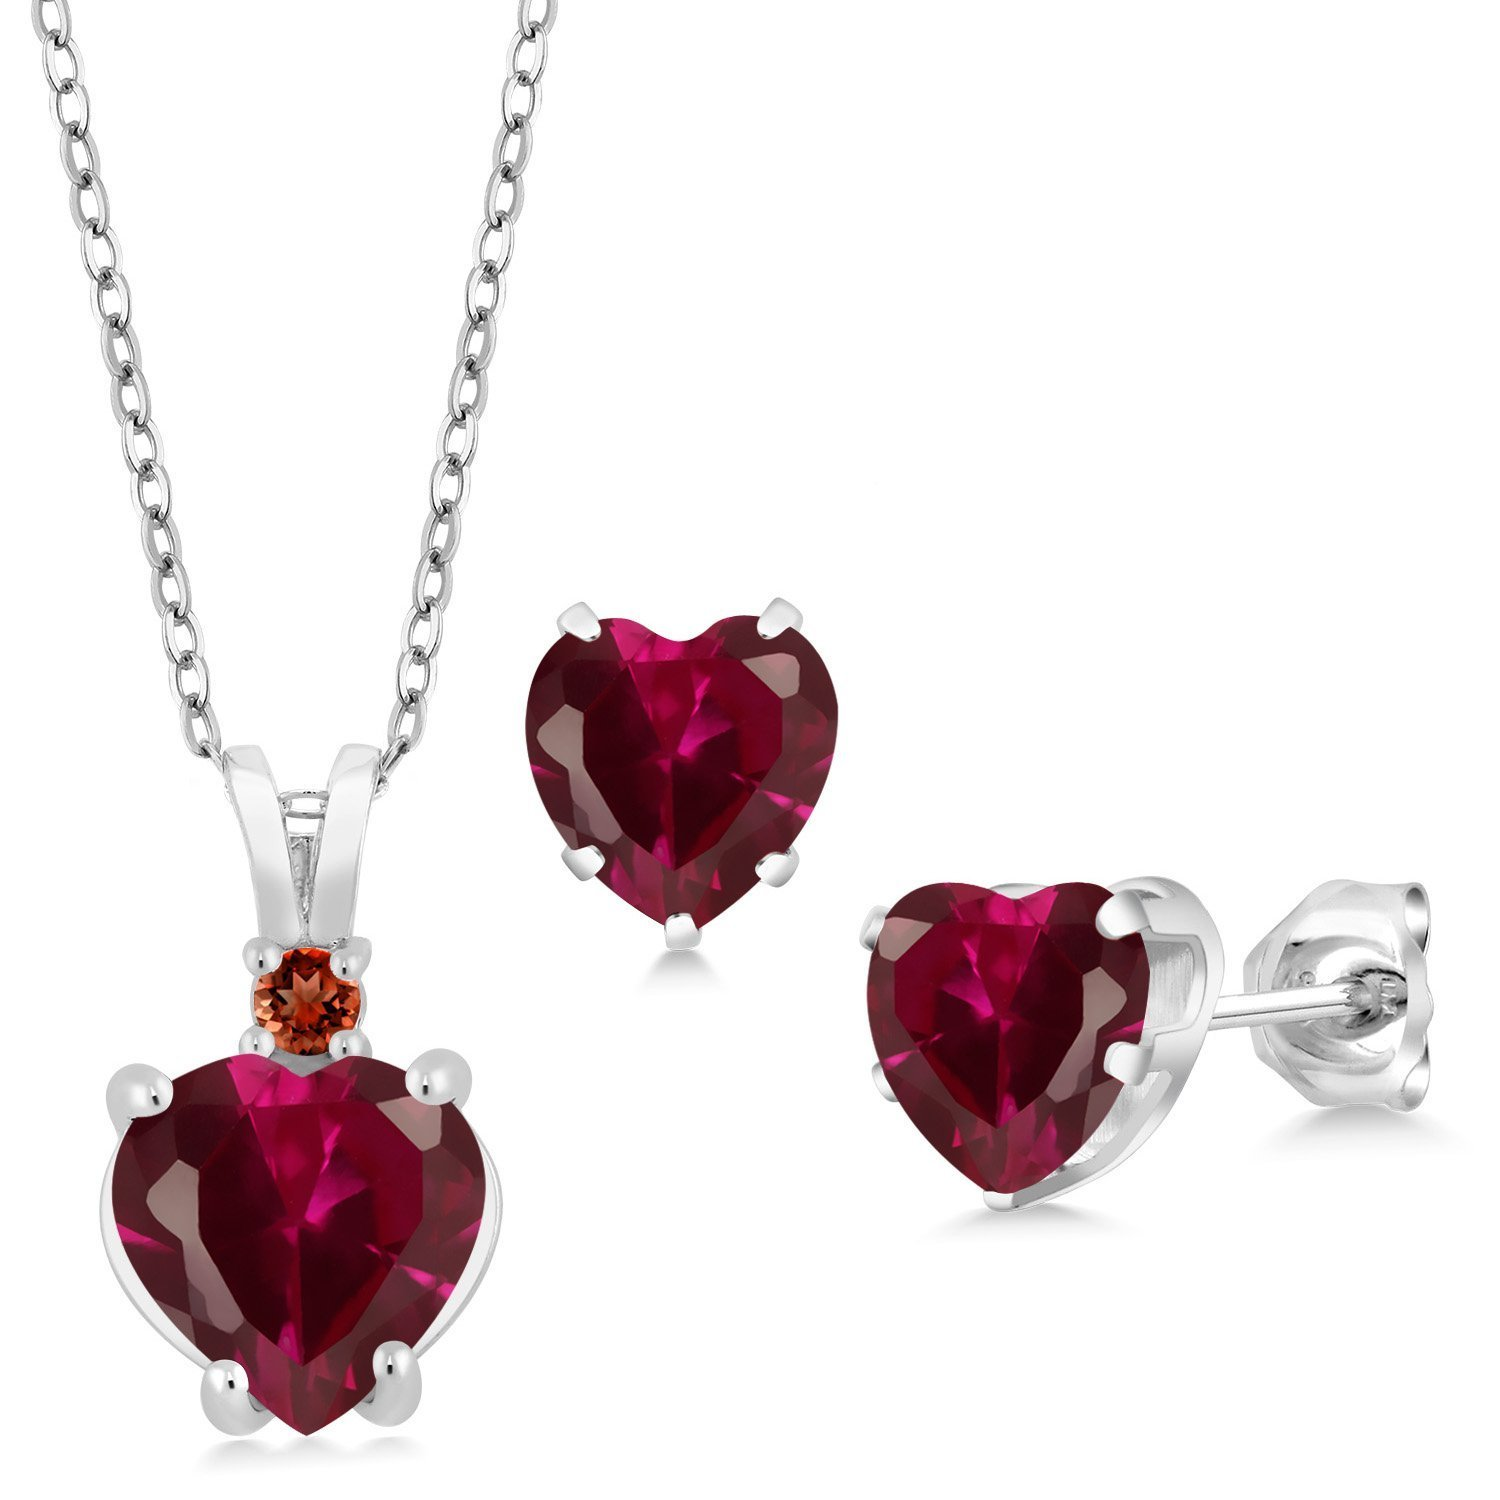 Women's Red Heart Shape Lab Created Ruby 925 Sterling Silver Pendant Earrings Set - DeluxeAdultCostumes.com